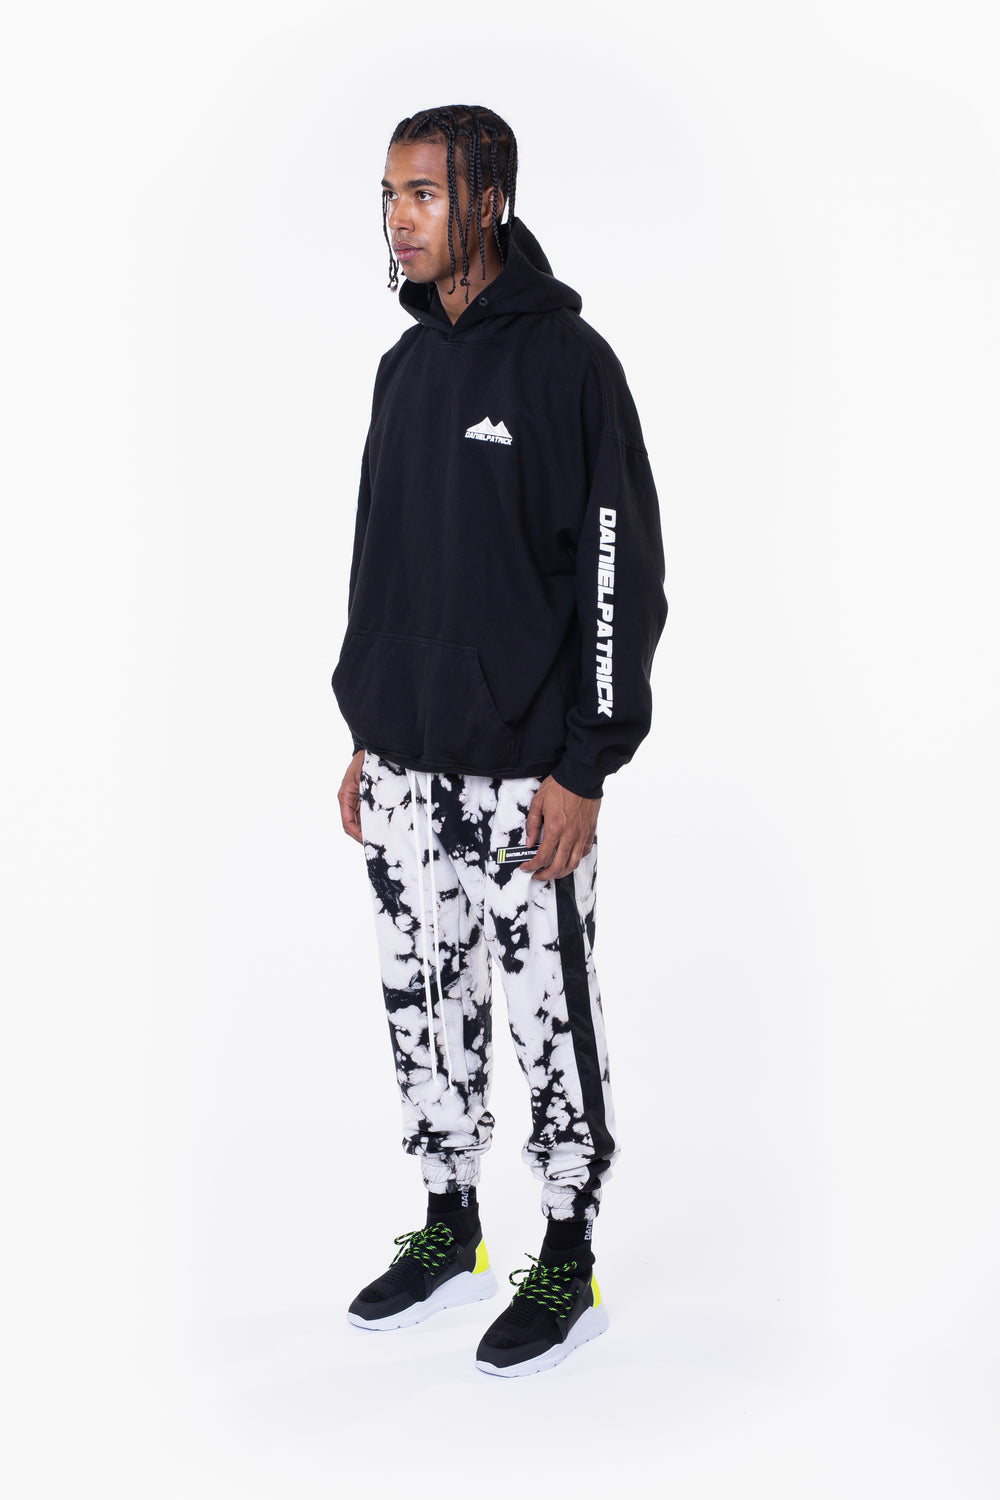 moving mountains hoodie / black